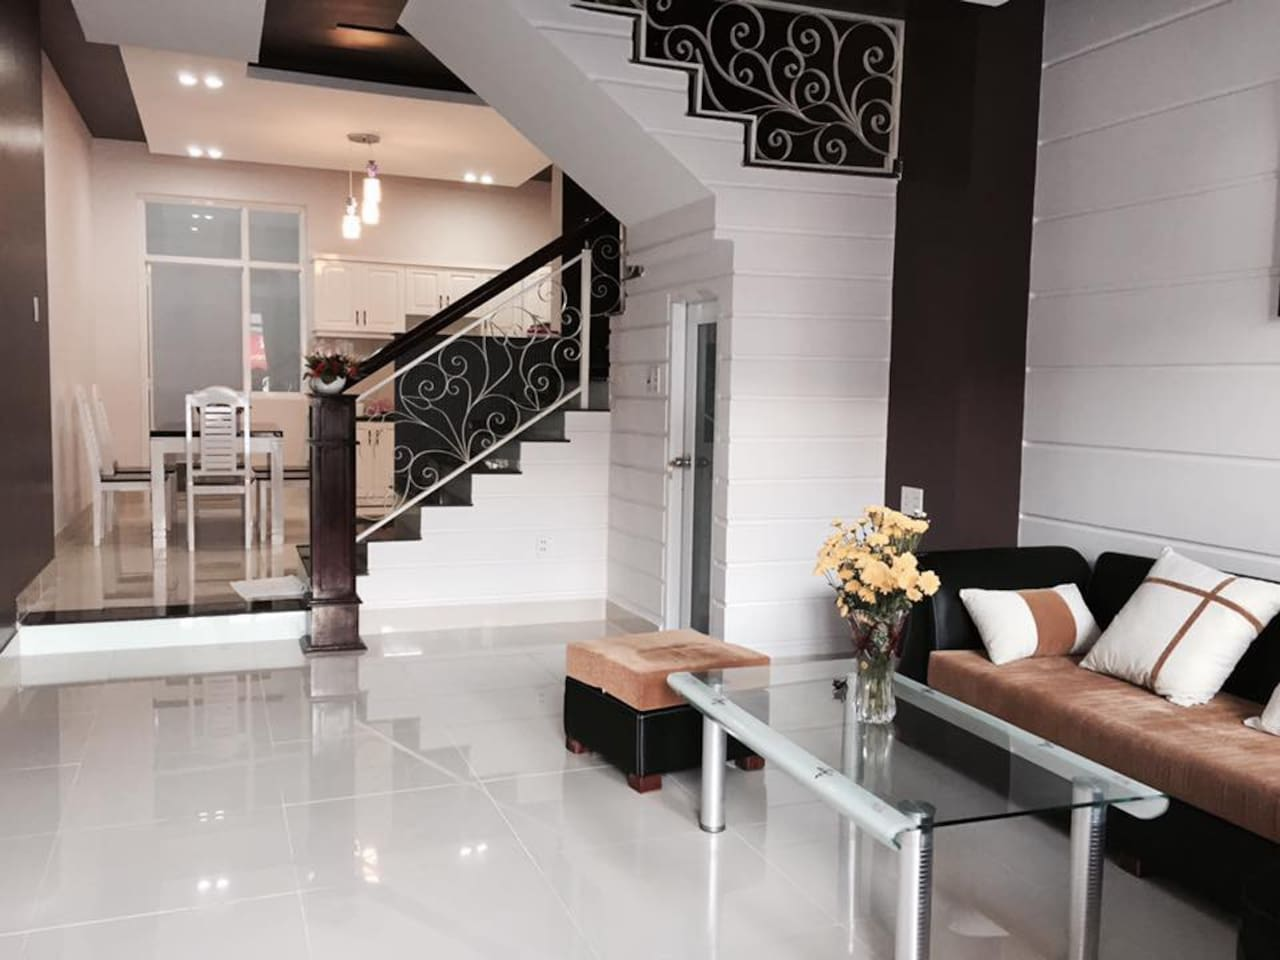 Spacious living room, stairway, and kitchen